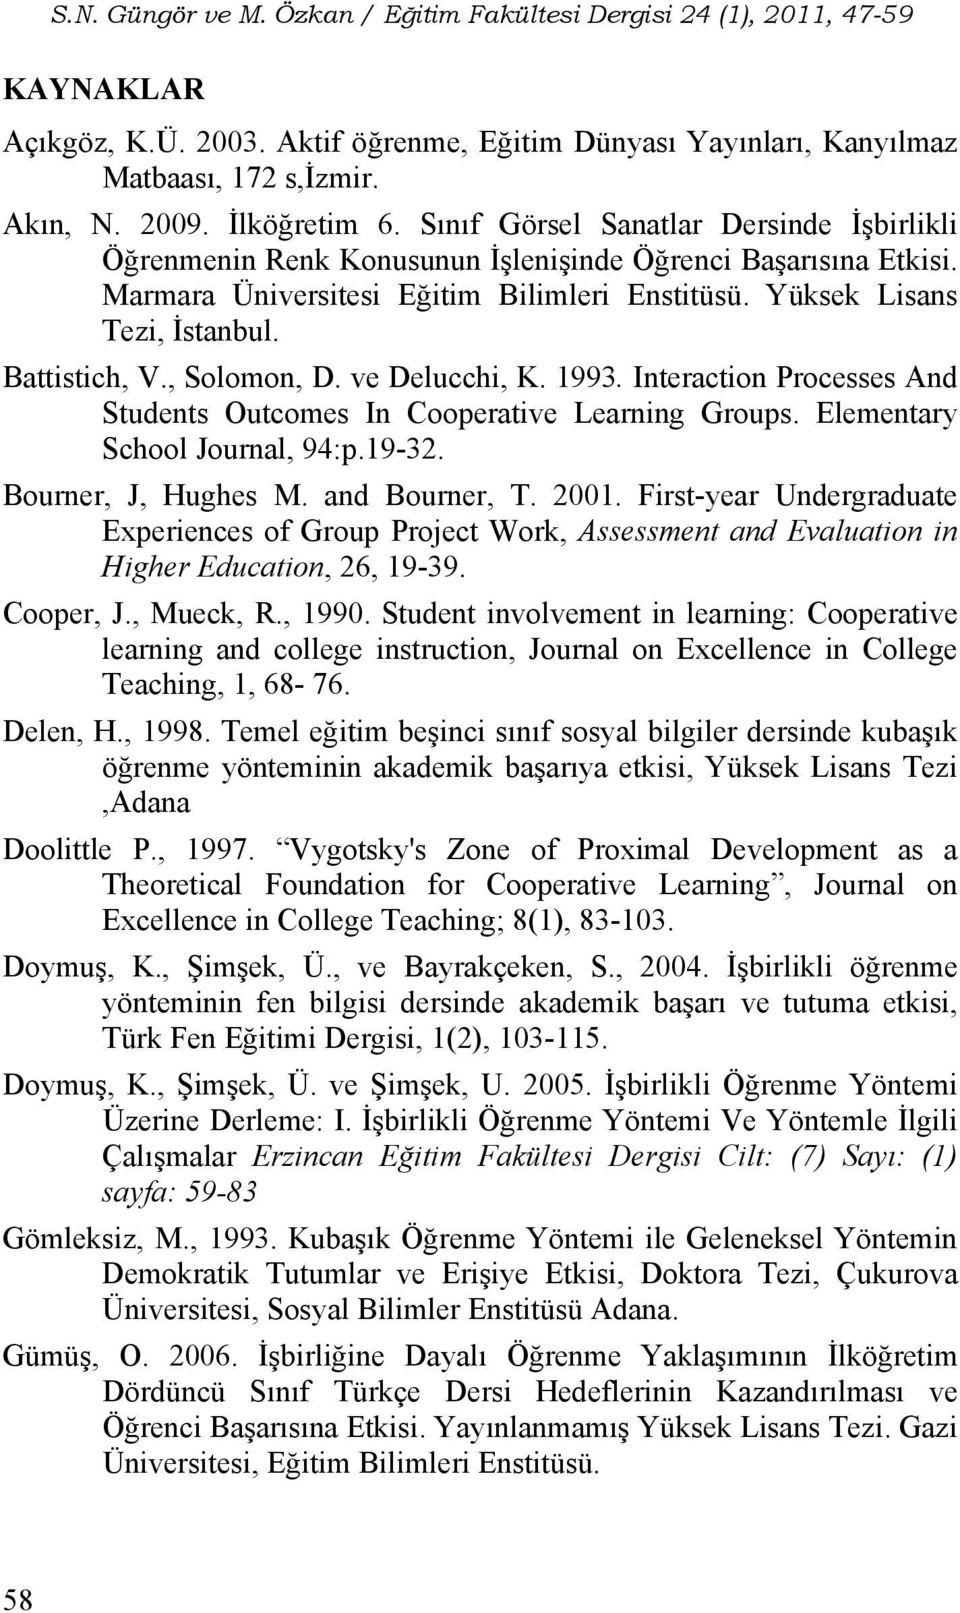 , Solomon, D. ve Delucchi, K. 1993. Interaction Processes And Students Outcomes In Cooperative Learning Groups. Elementary School Journal, 94:p.19-32. Bourner, J, Hughes M. and Bourner, T. 2001.